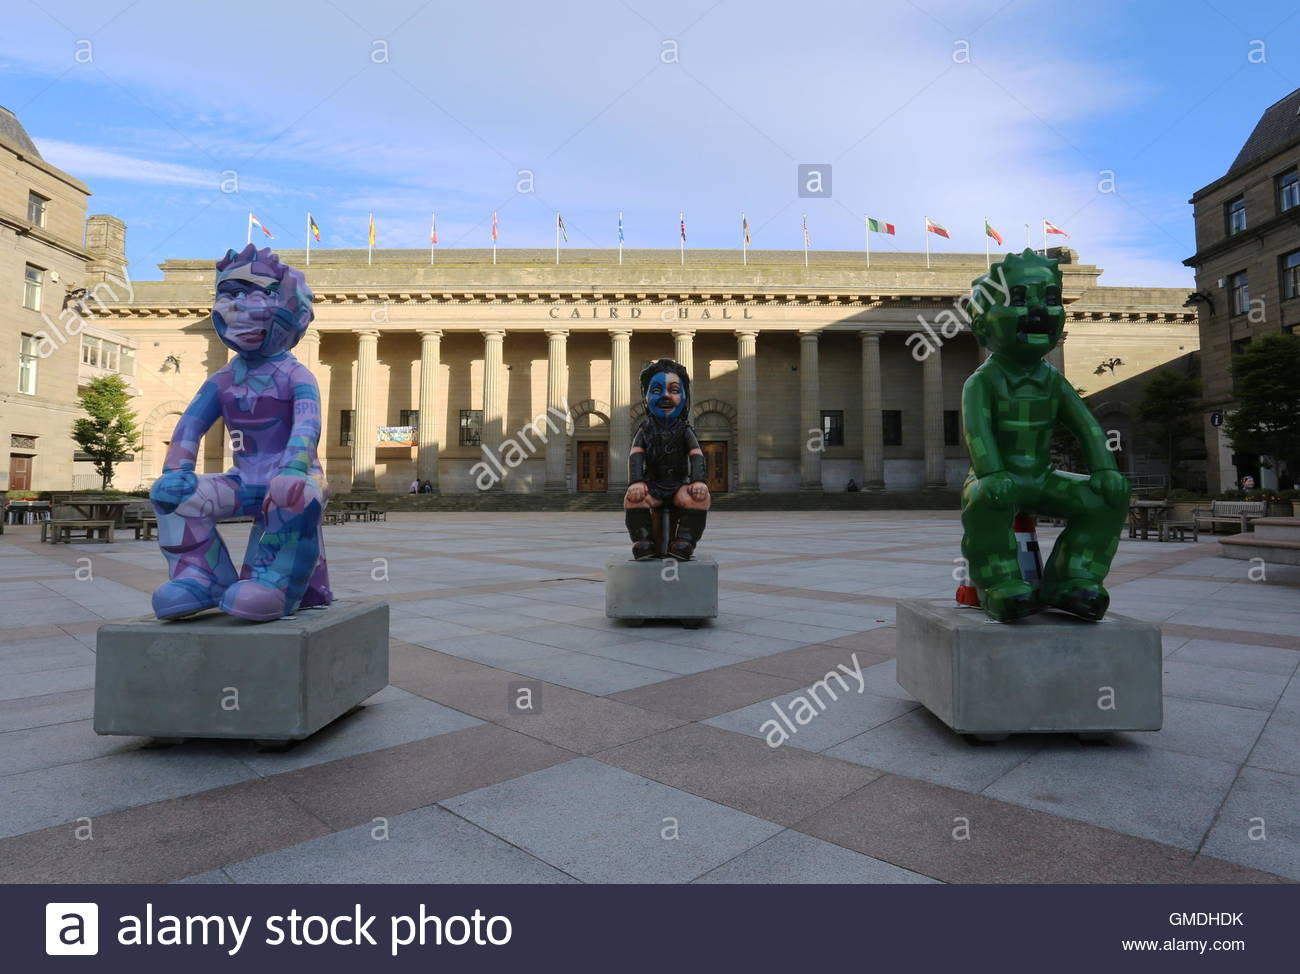 Where's Wullie, Wullie Wallace and Minecraft Oor Wullie statues City Square Dundee Scotland  August 2016 - Stock Image